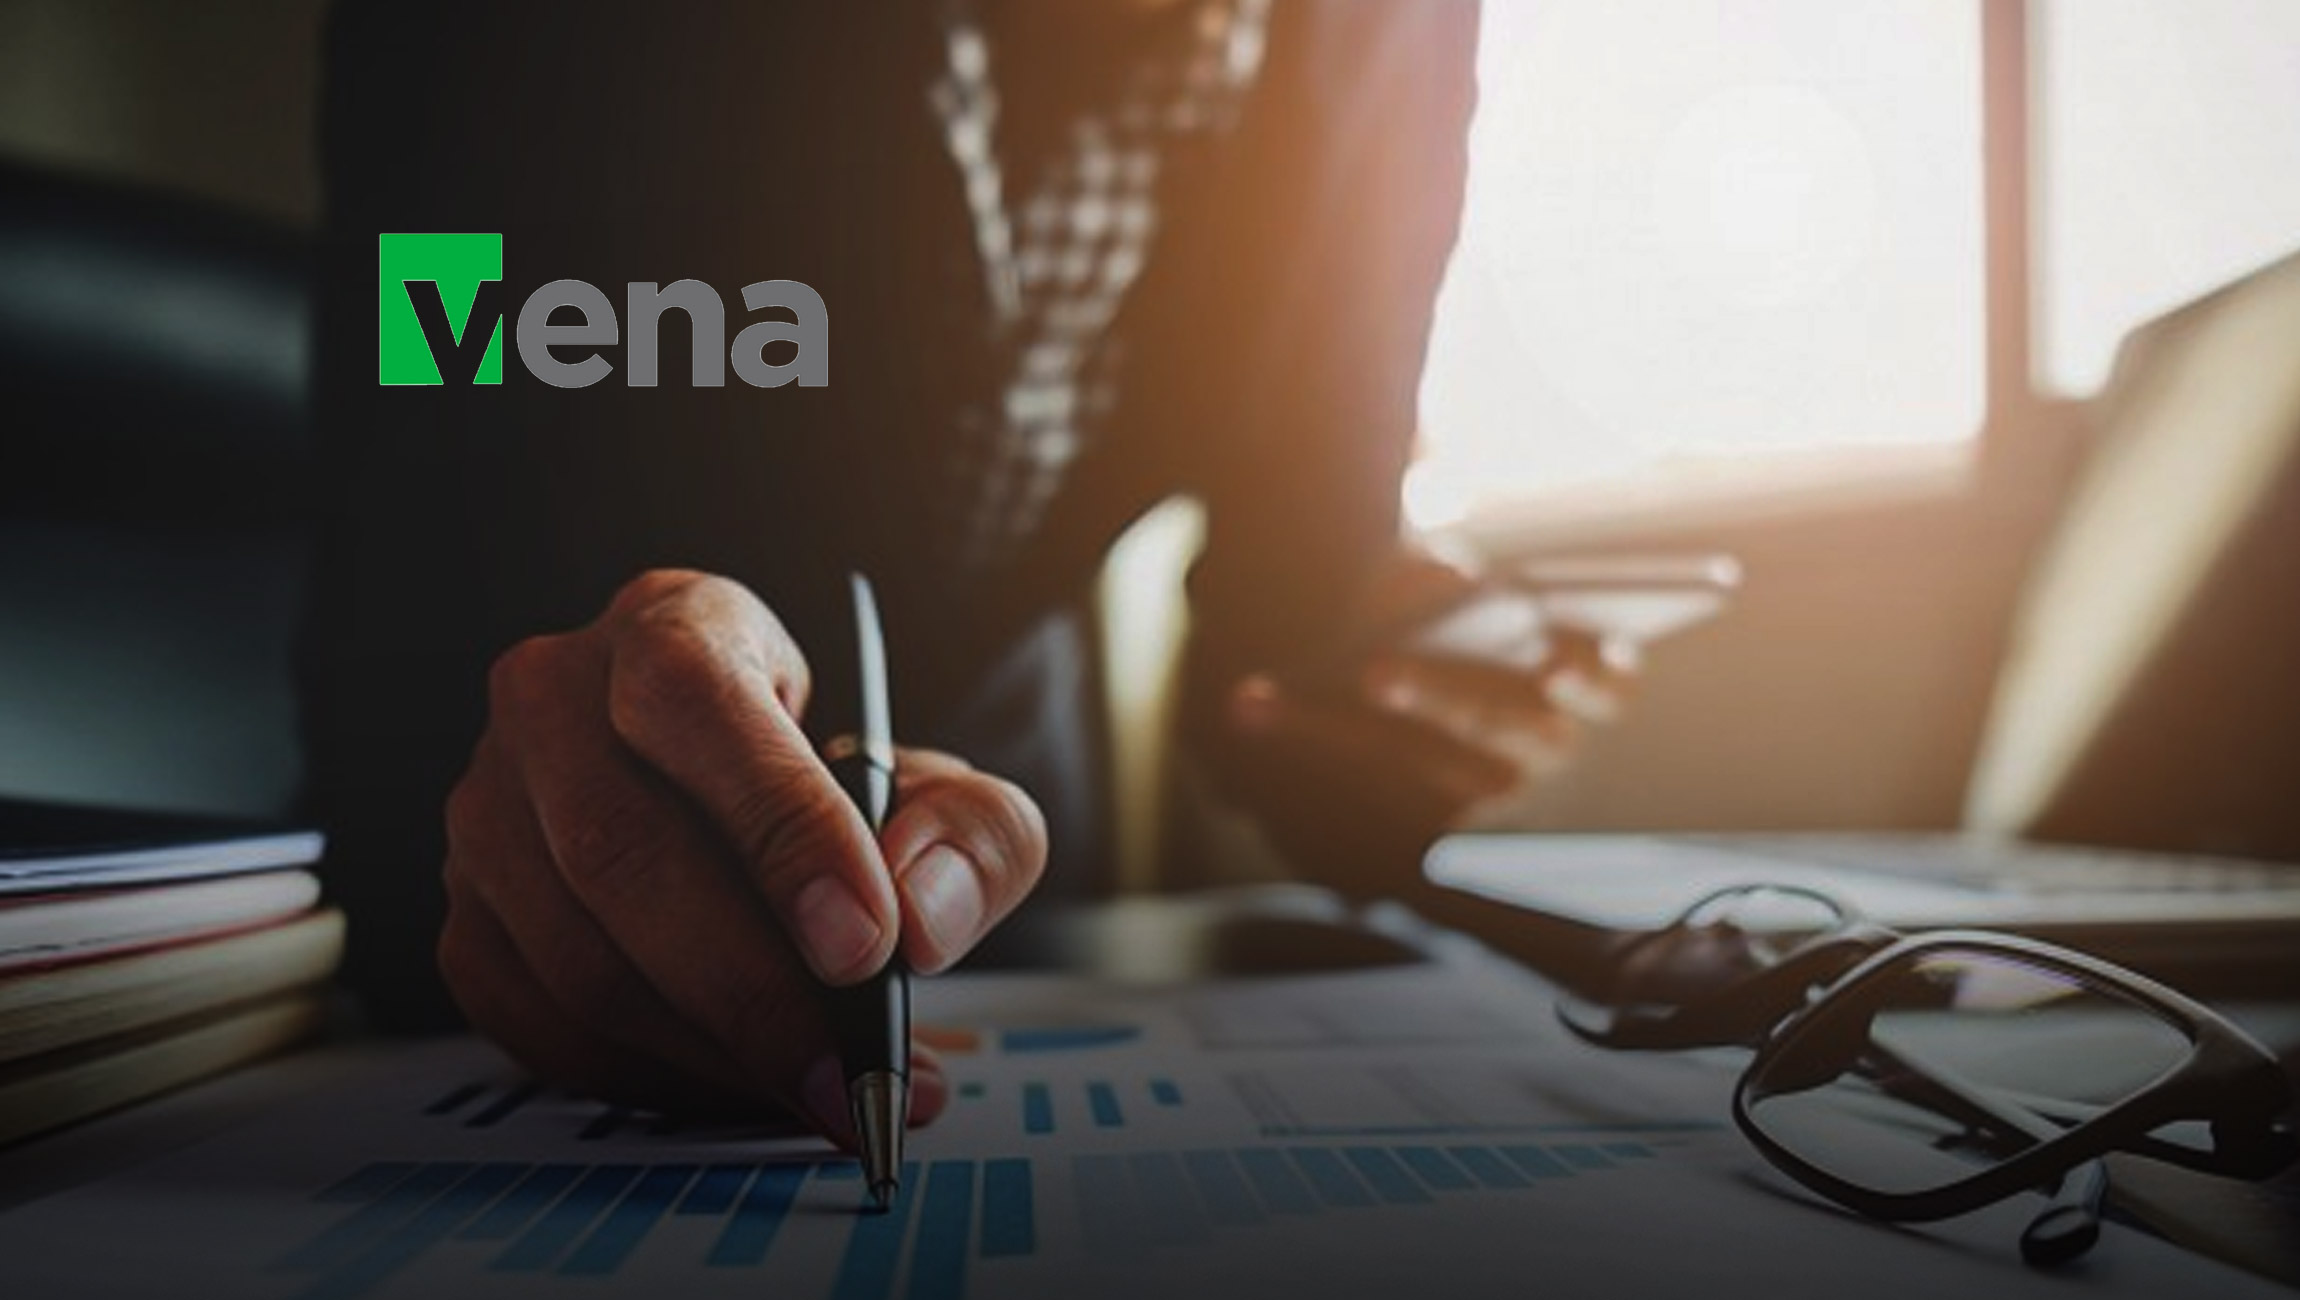 Vena Solutions Launches Business Planning Quick Start Package